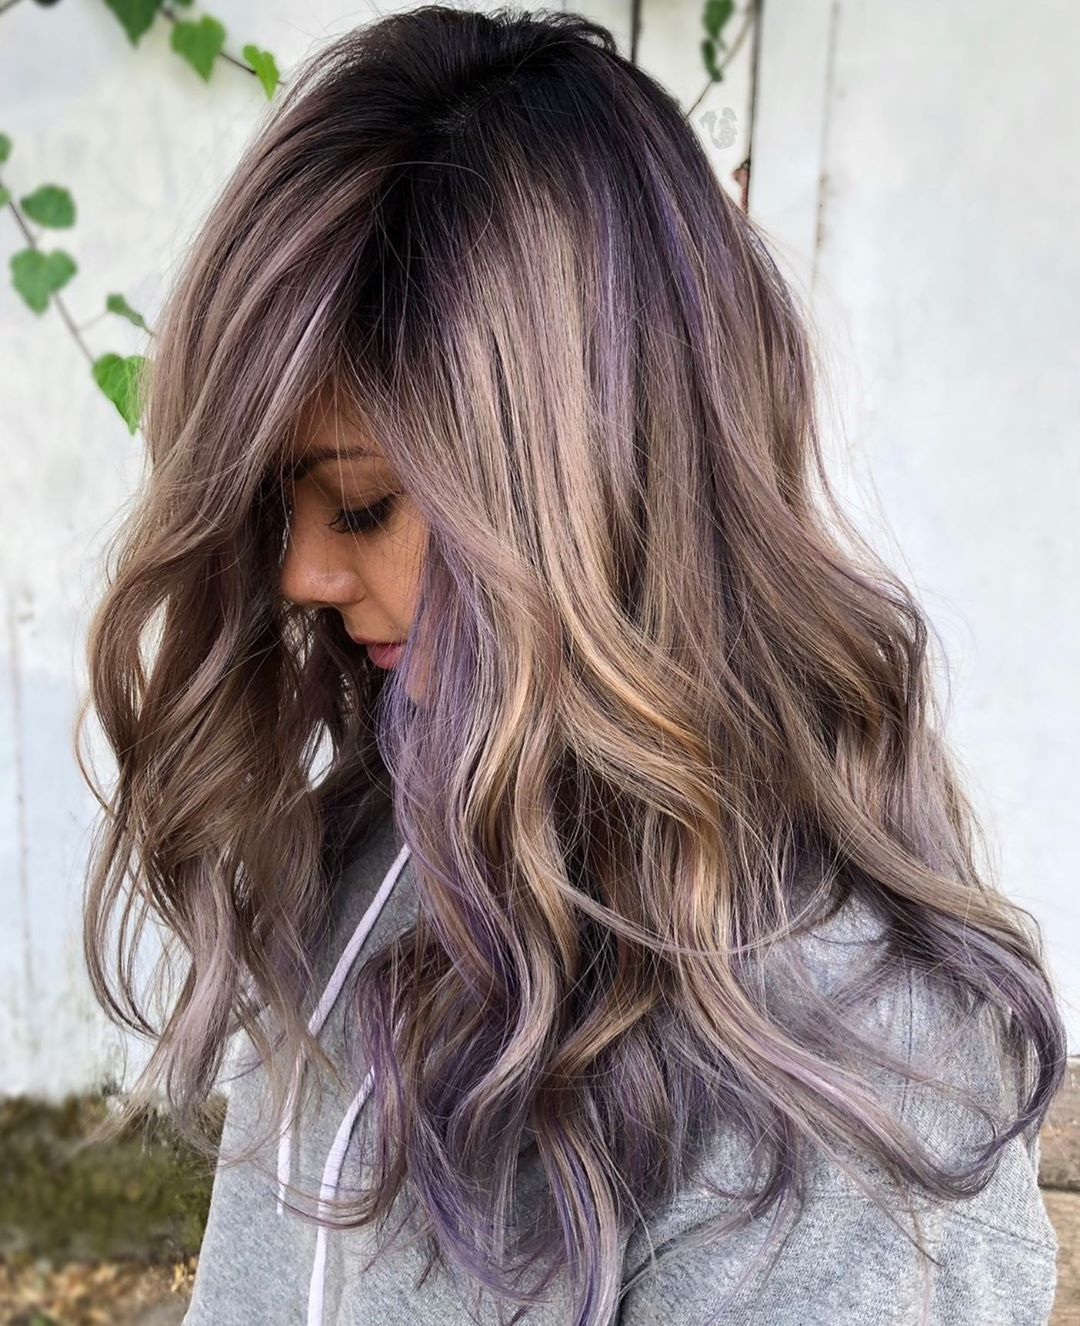 Blonde Hair with Light Purple Highlights